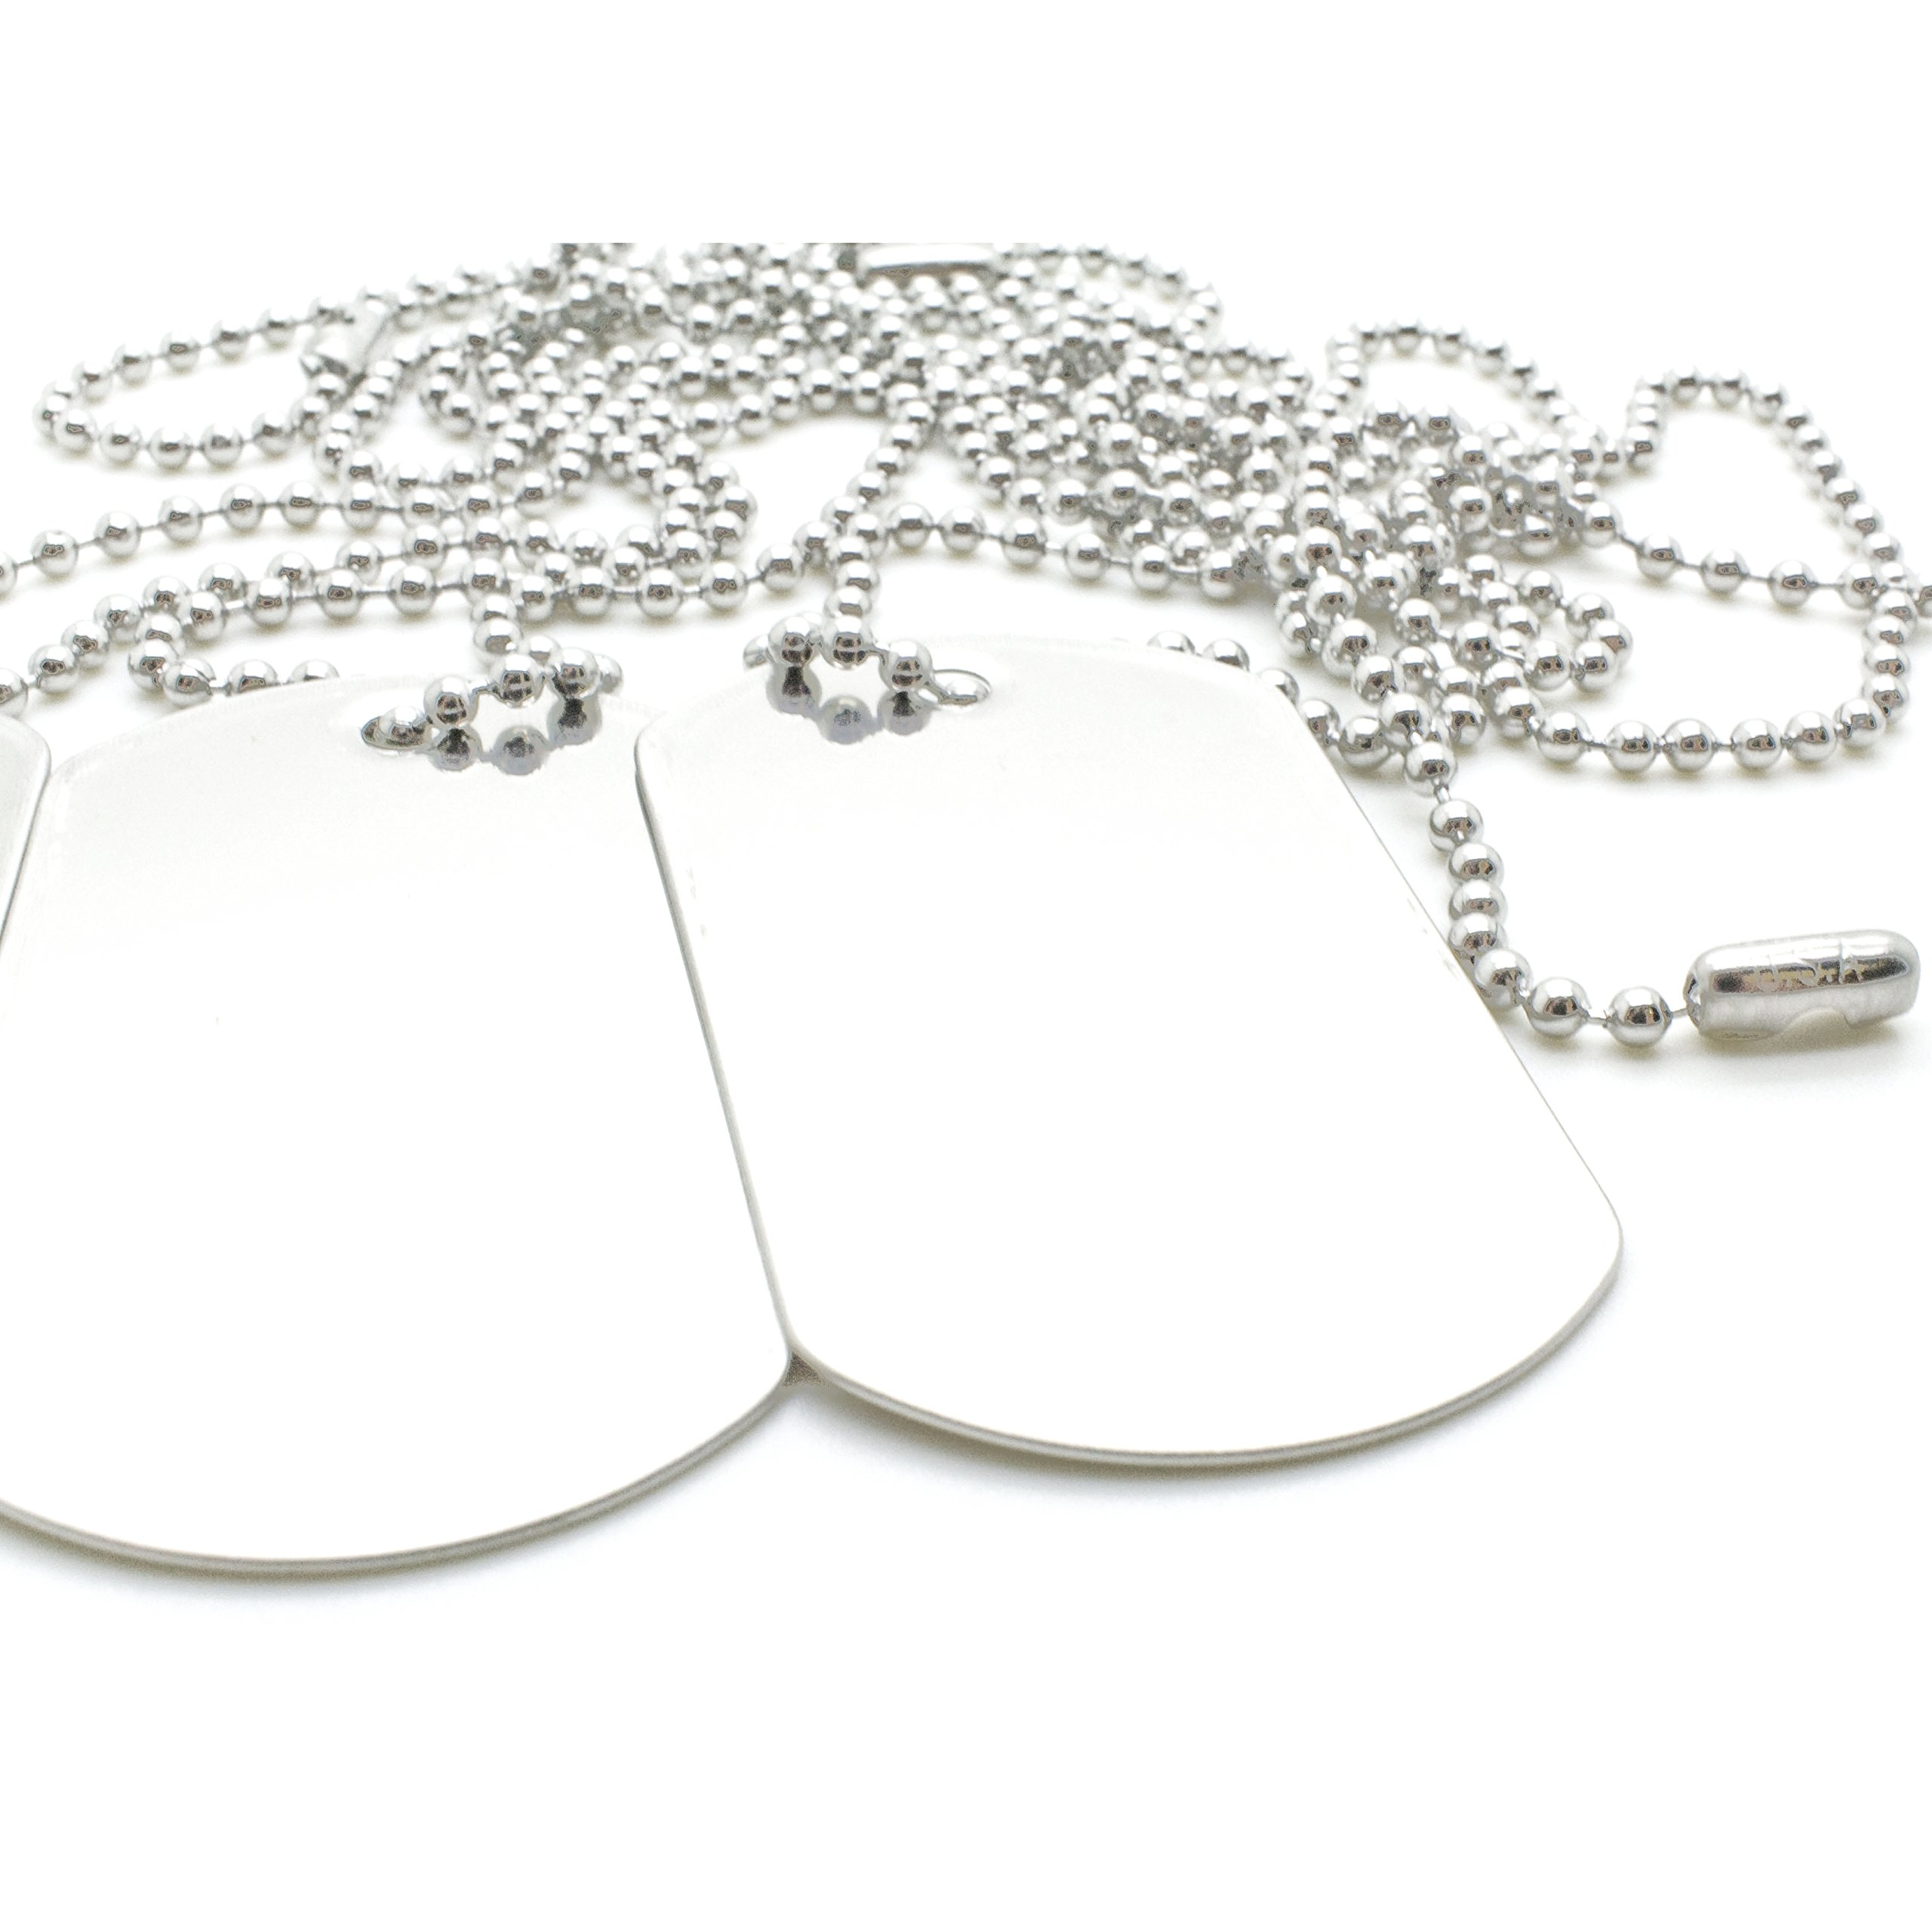 100 COMBO Shiny Stainless Steel Military spec Dog Tags - BLANK with Stainless Steel Chains (100 dog tags w/ 30'' chains) by OnDepot.com